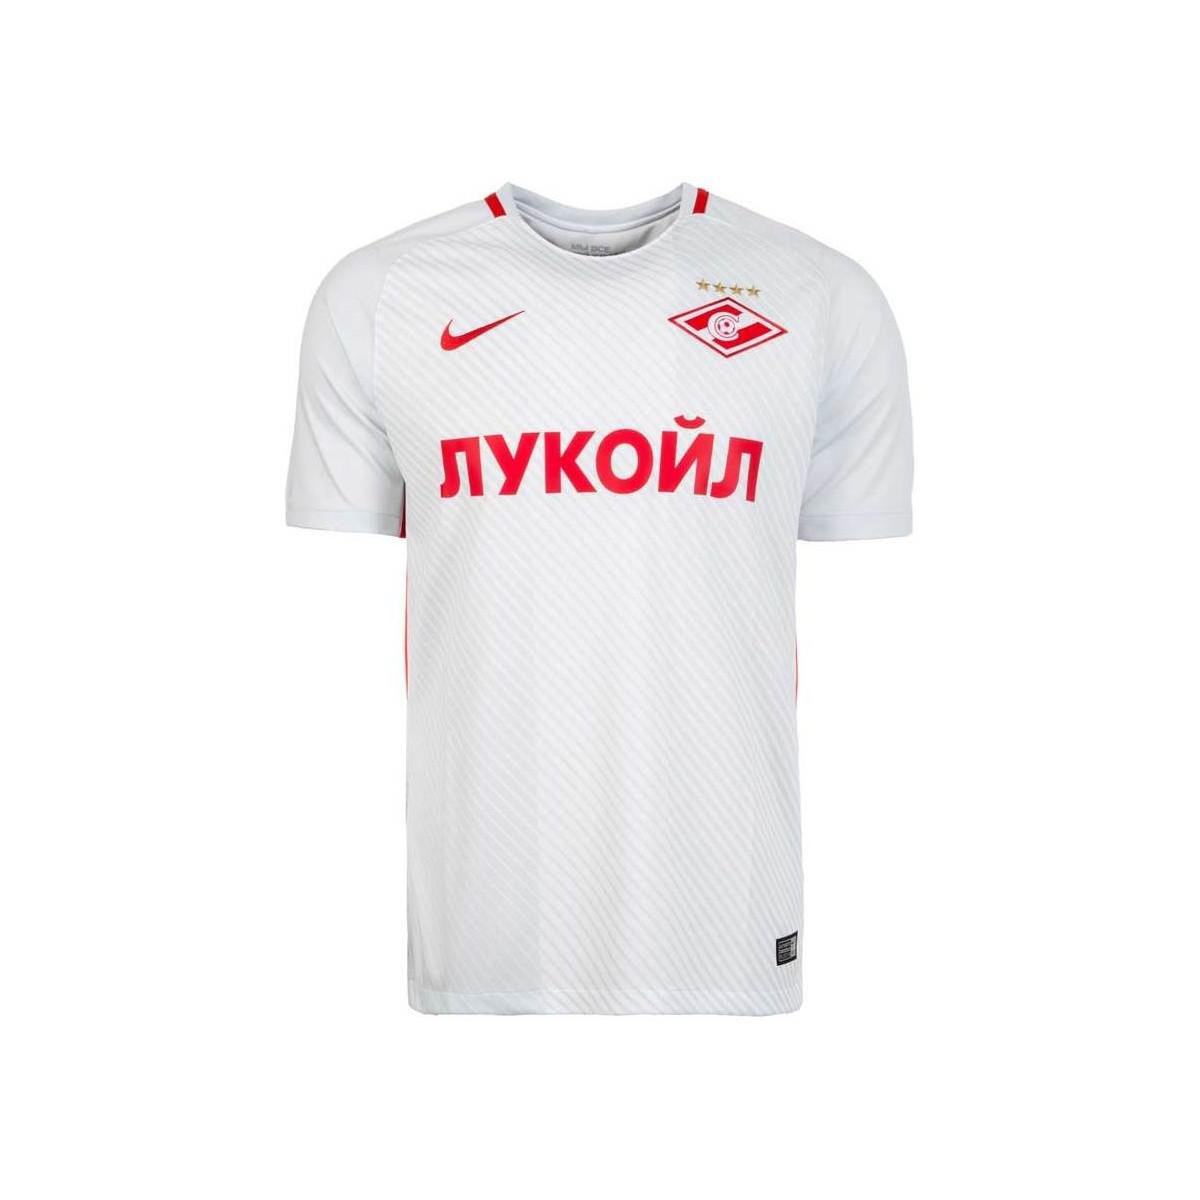 Lyst - Nike 2017-2018 Spartak Moscow Away Football Shirt Women s T ... 4e98f4ce7